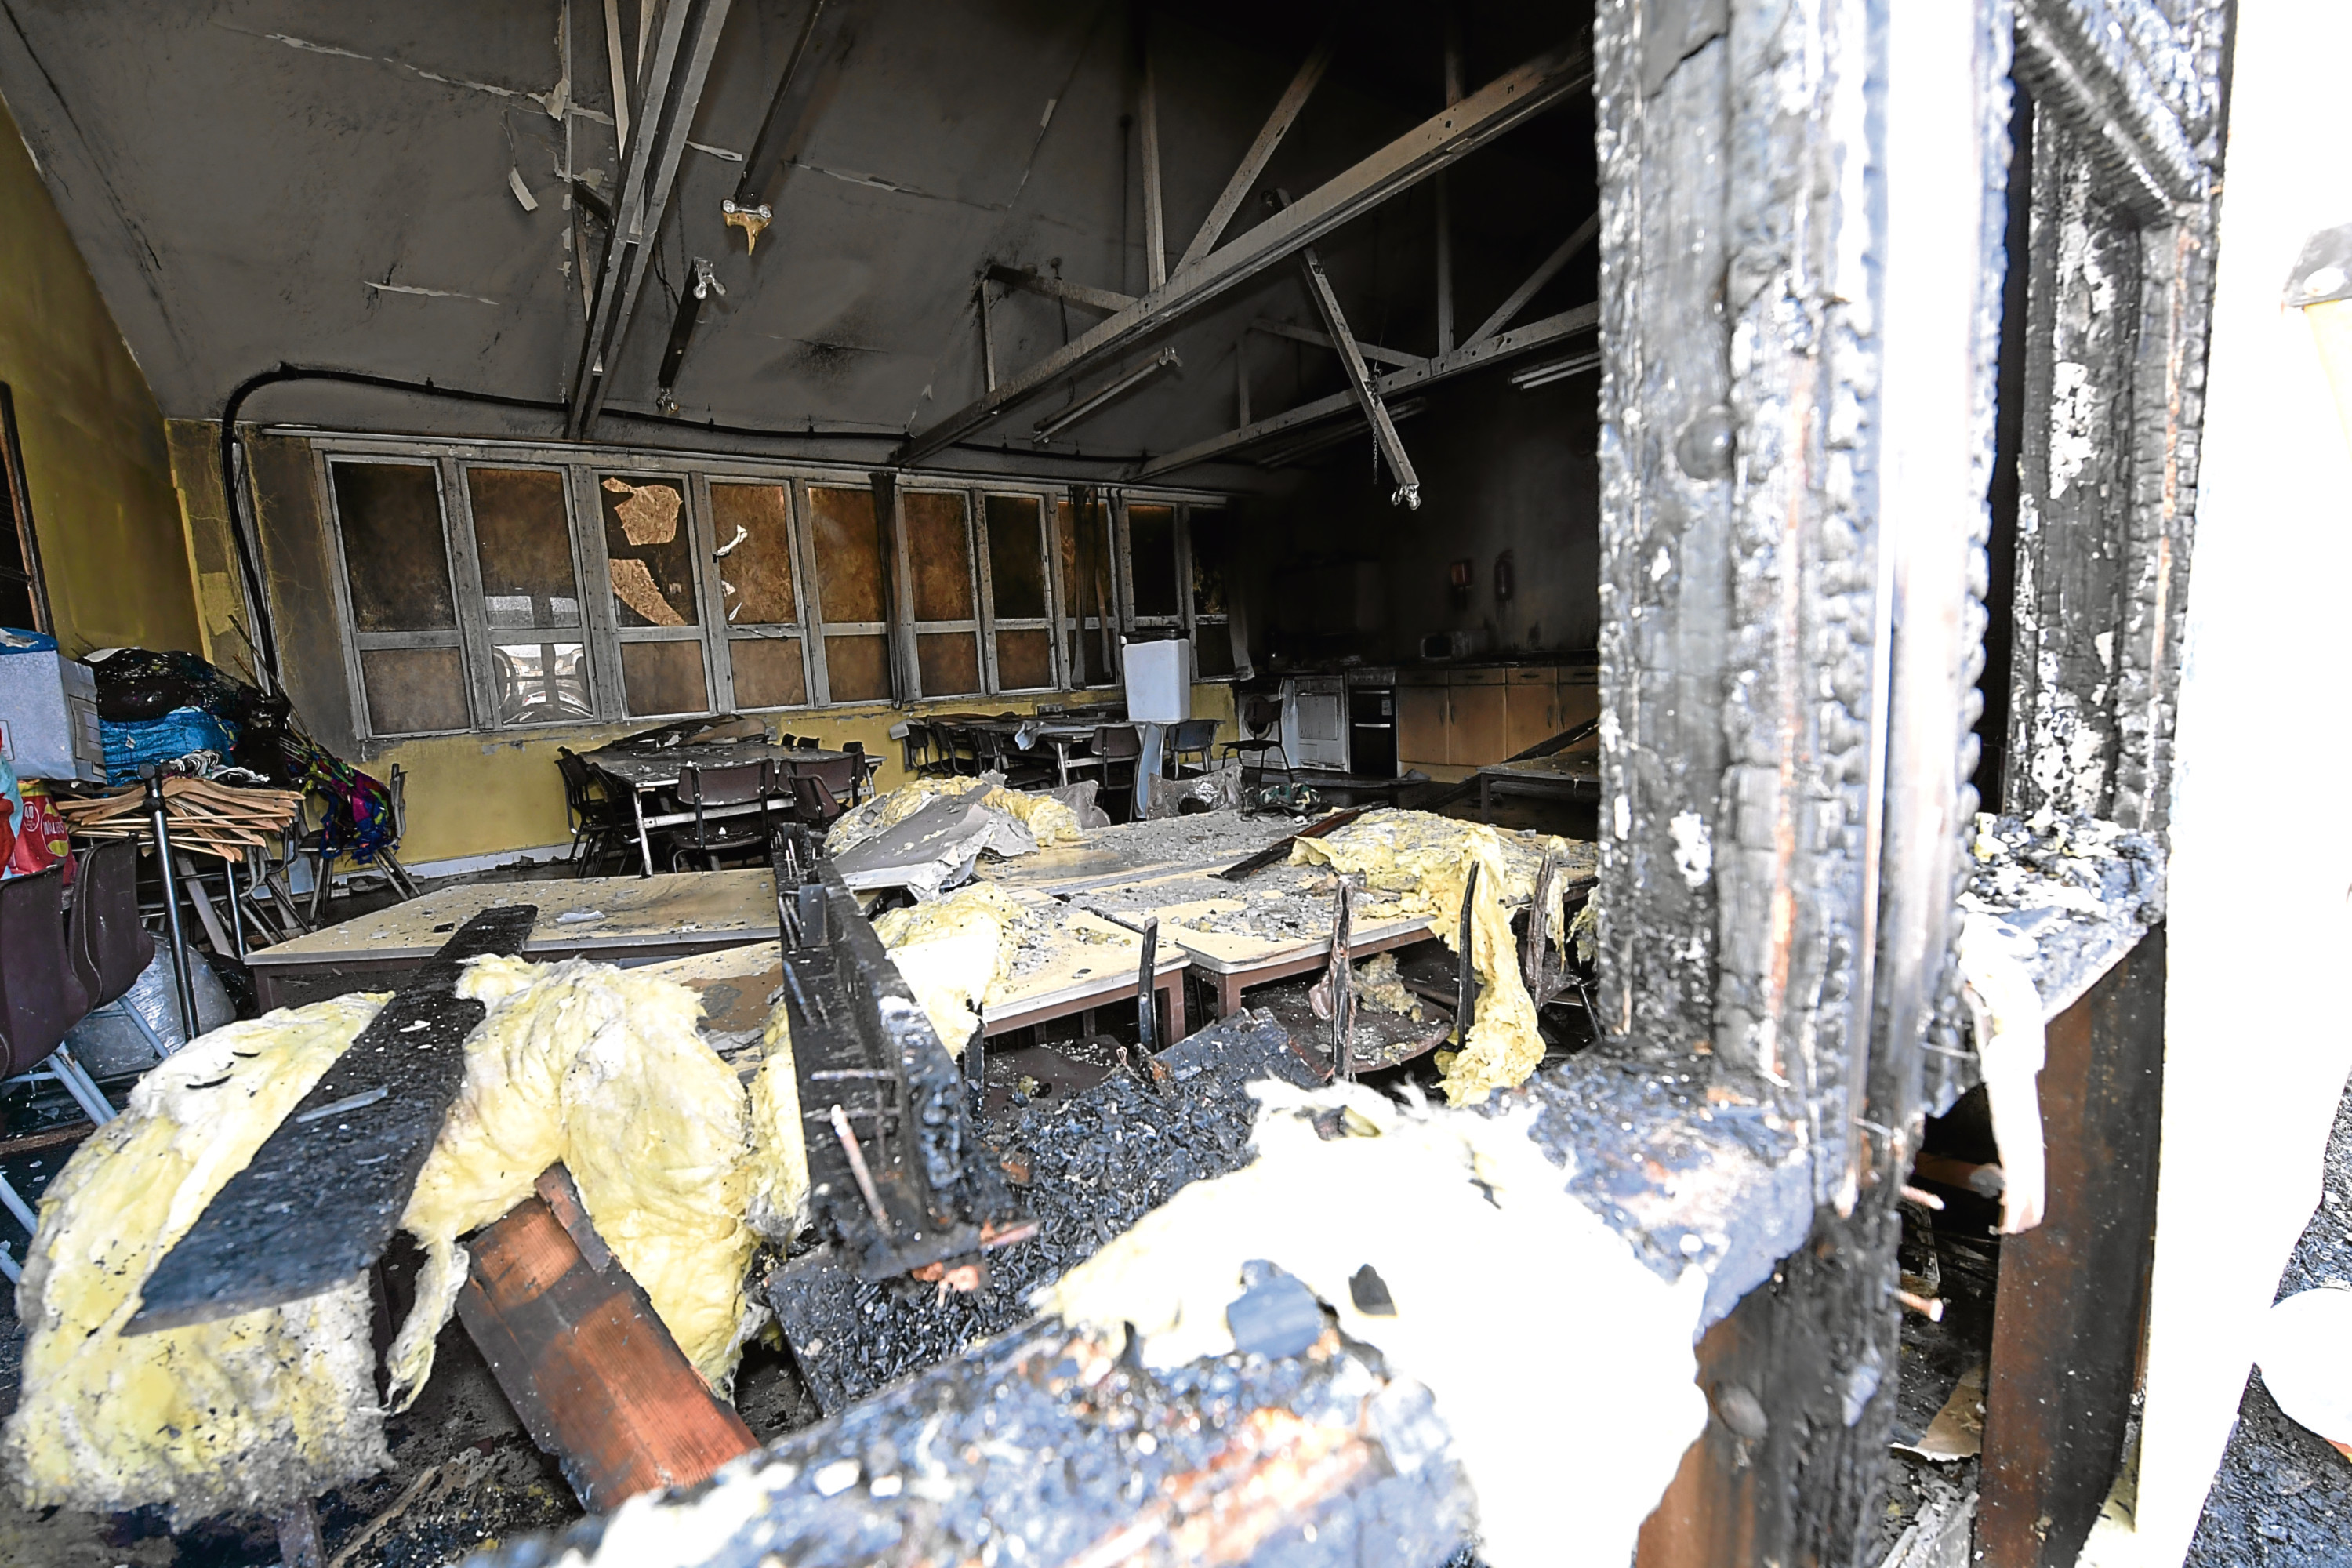 FIRE DEVASTATION OF THE ART DEPARTMENT AT ST ANDREWS PRIMARY SCHOOL IN FRASERBURGH. (8/4/2018)